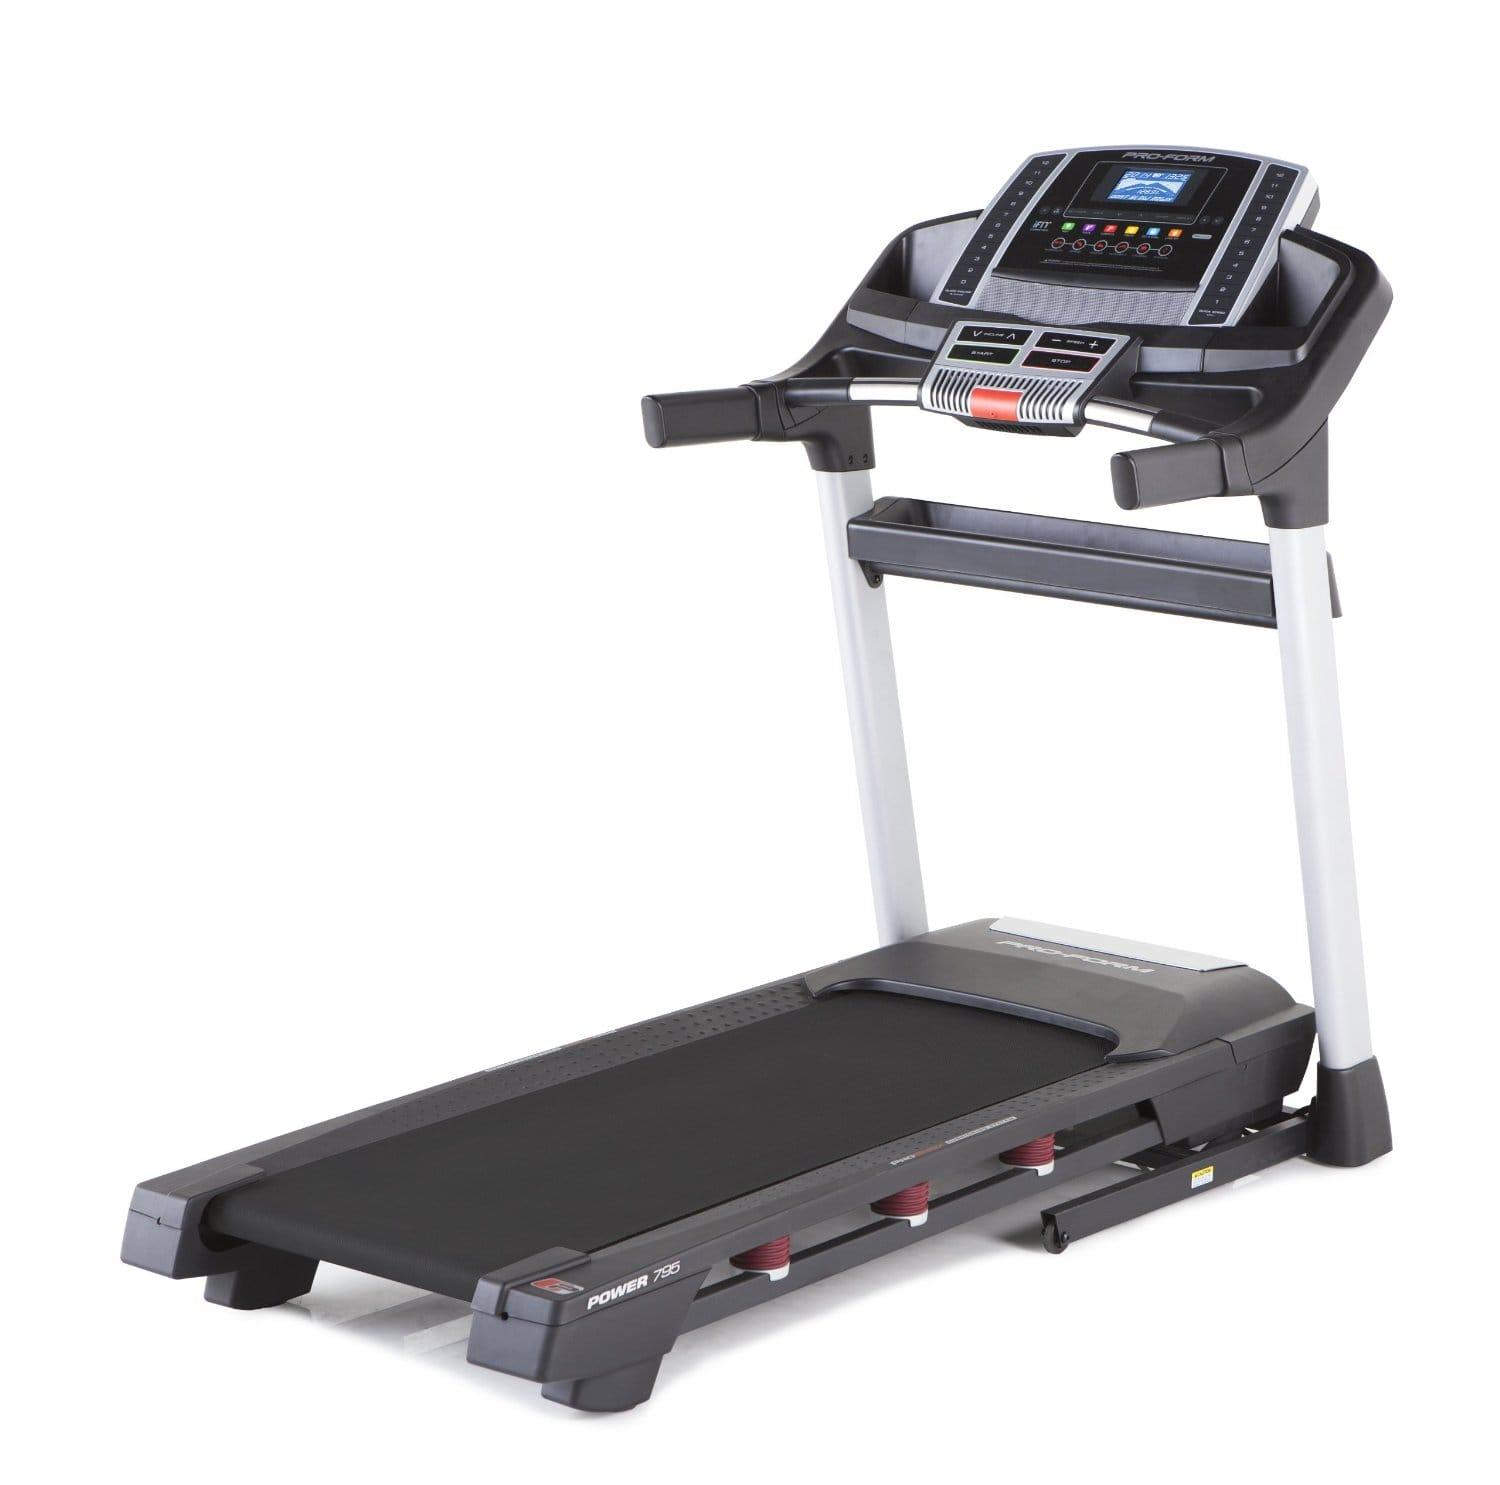 Landice L7 Treadmill Dimensions: ProForm Power 795 Review